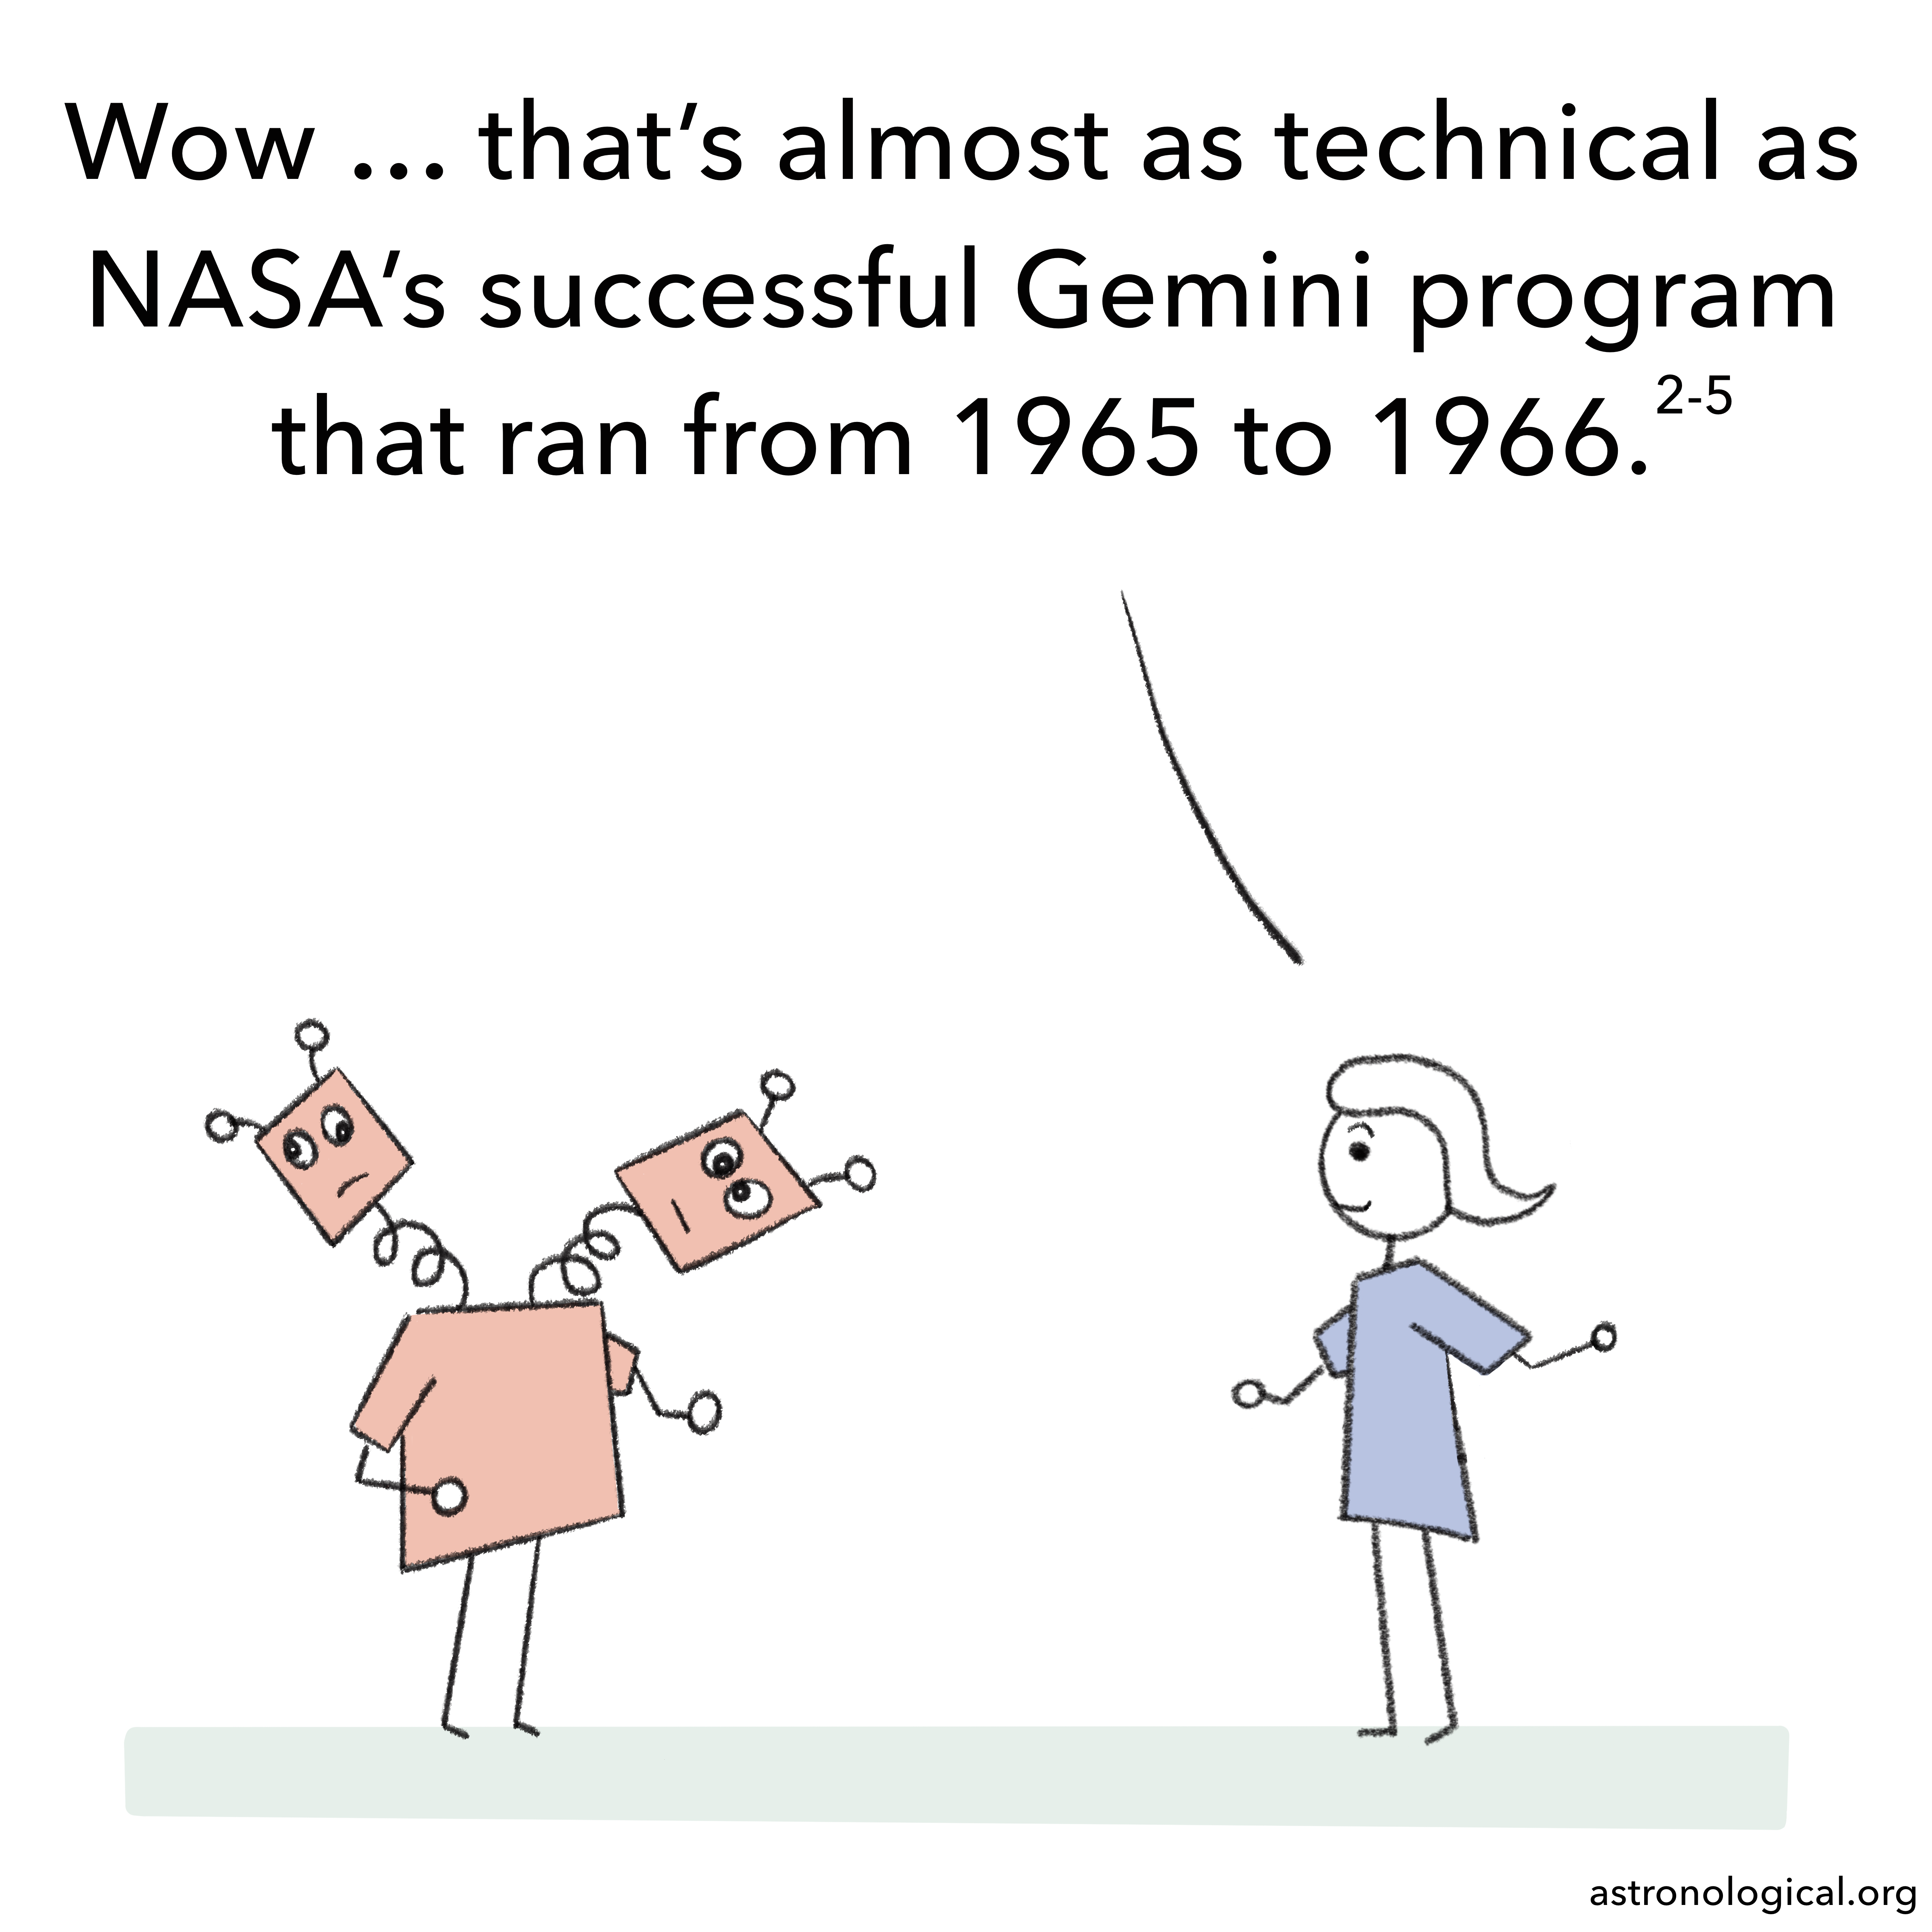 The girl looks unimpressed and replies: Wow … that's almost as technical as NASA's successful Gemini program that ran from 1965 to 1966.